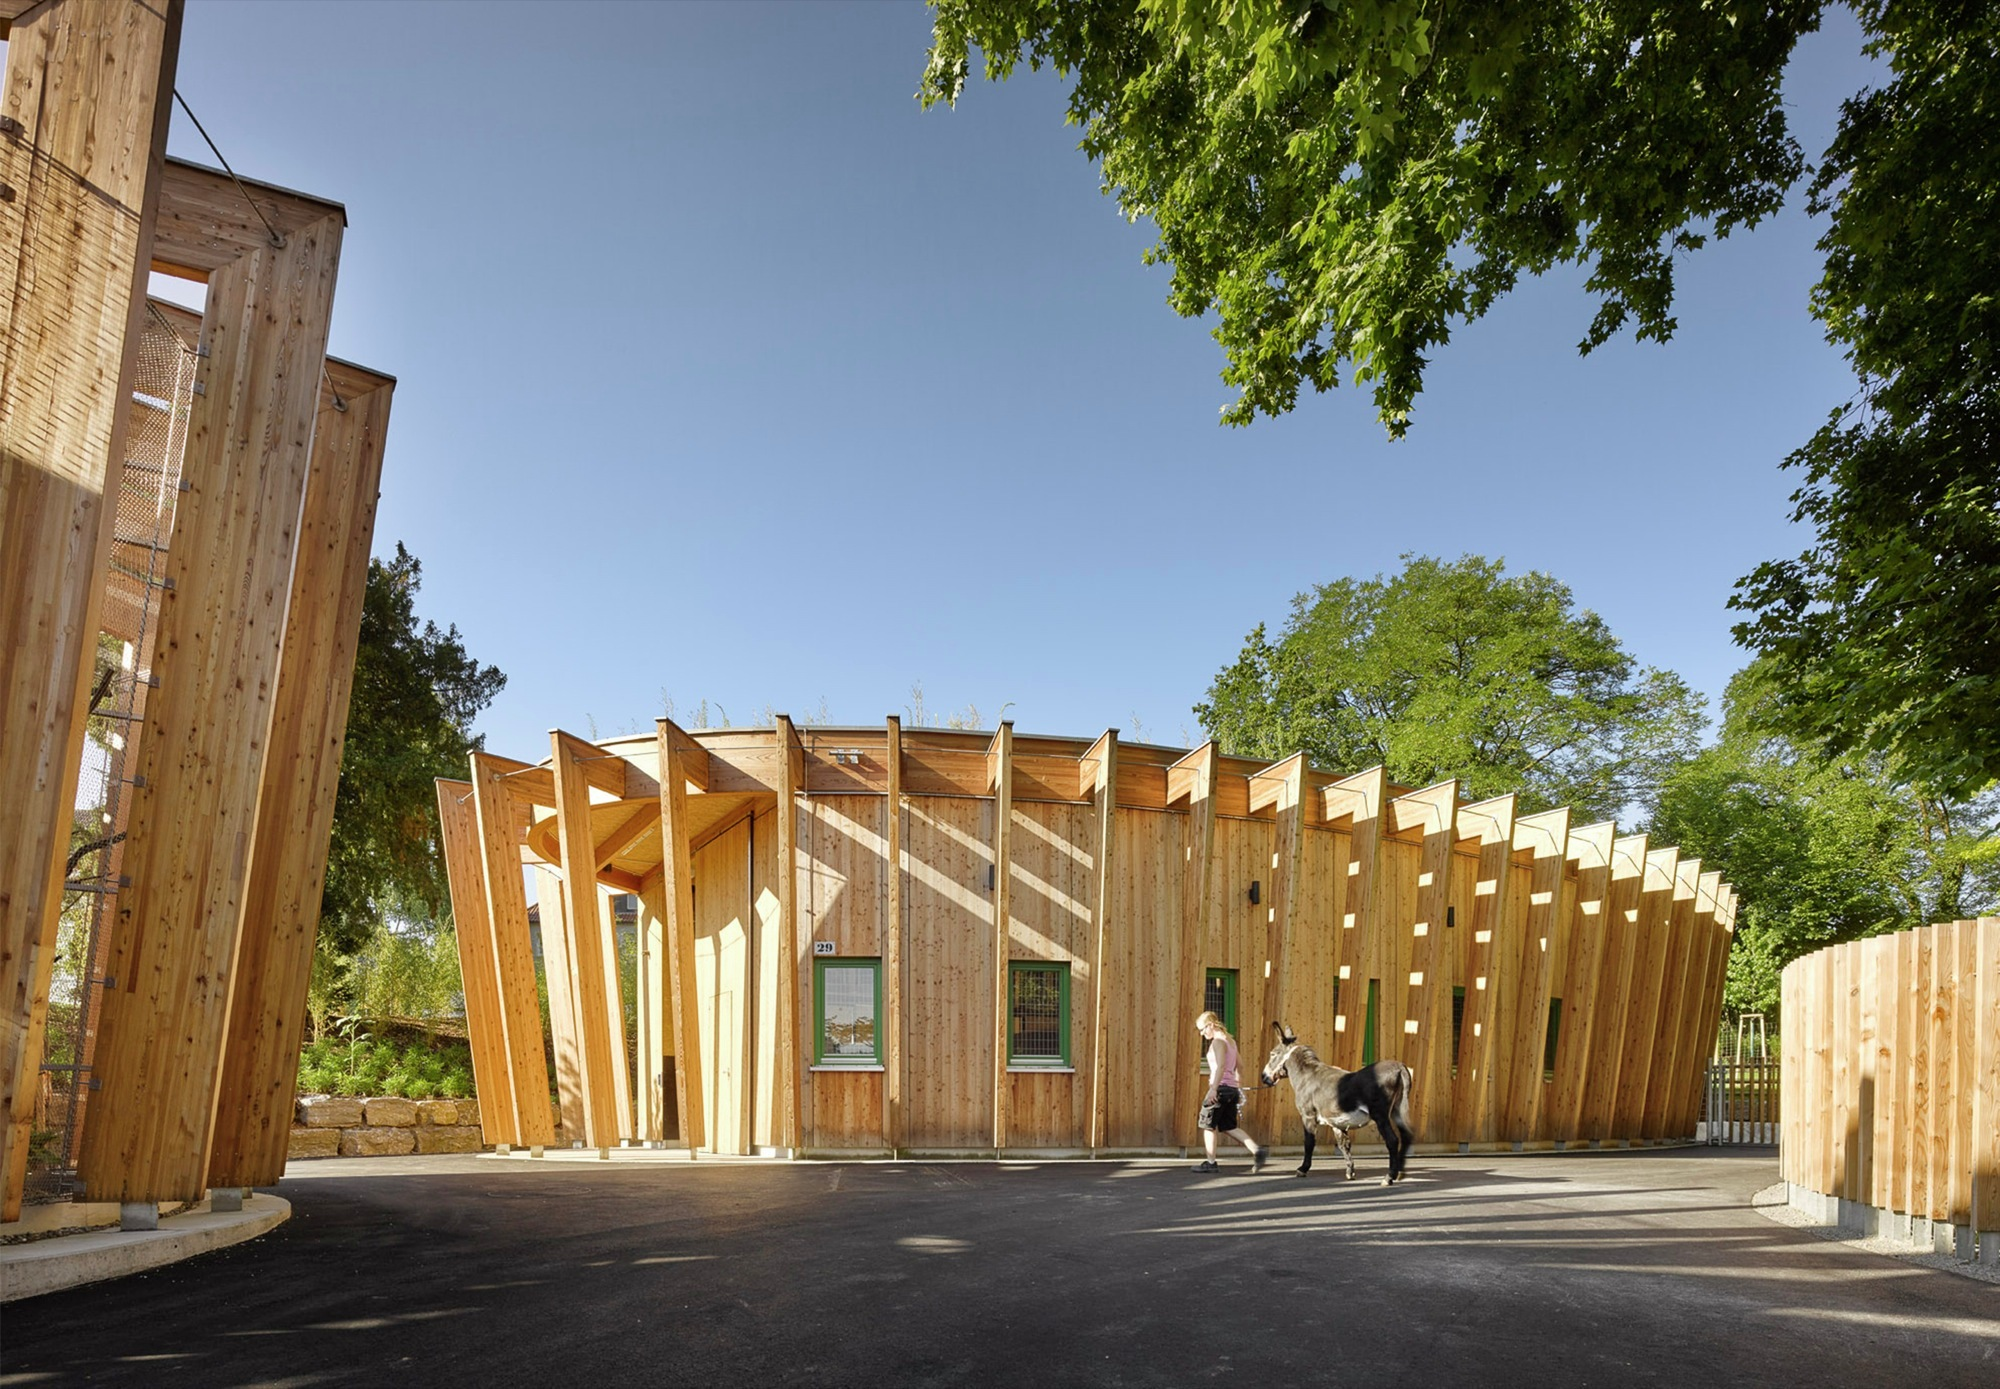 214 Hringen Petting Zoo Kresings Architektur Archdaily